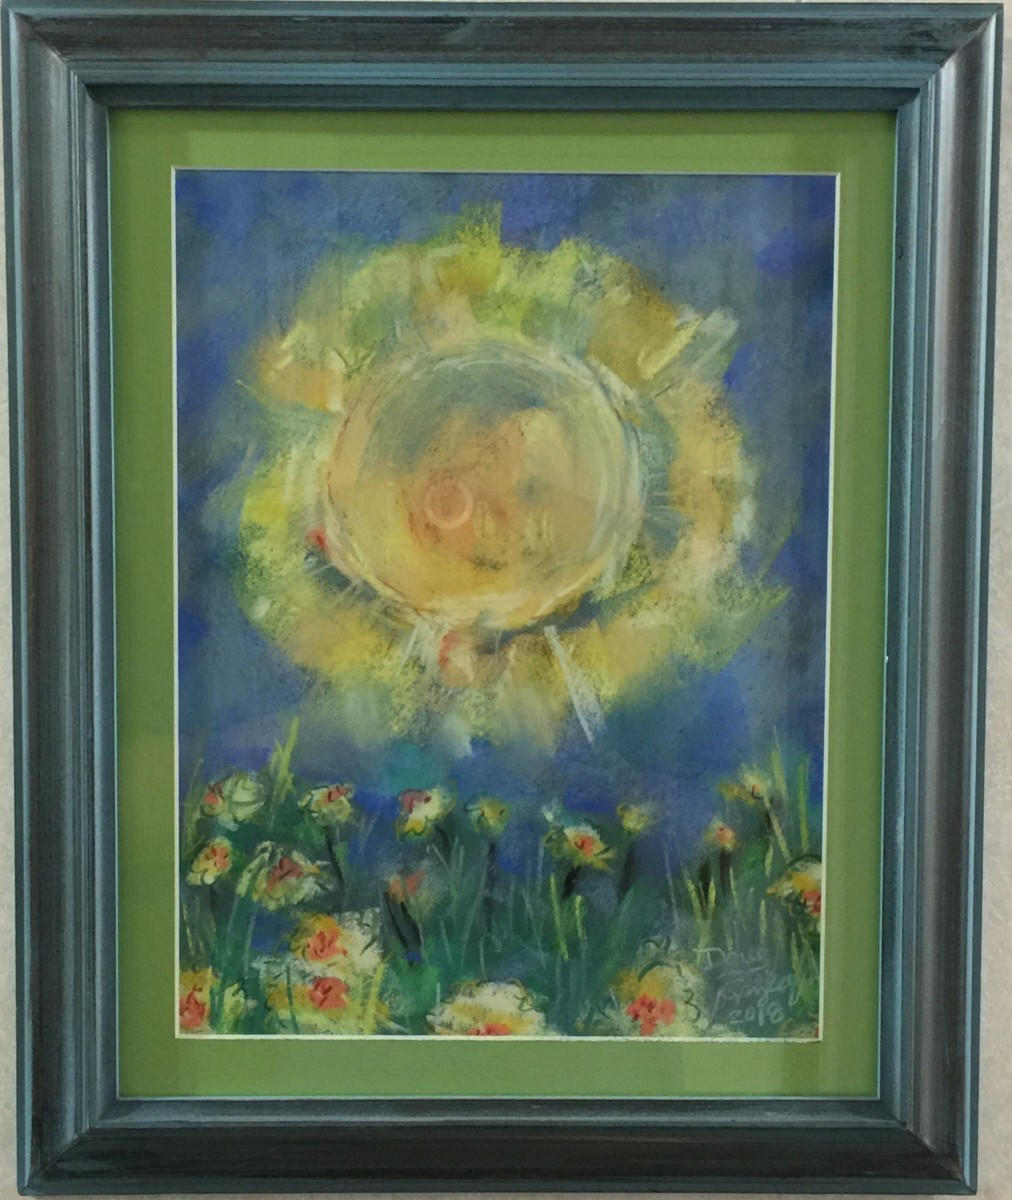 SUNFLOWERS - SALE ($20.00 through 12-1-19.  Pick-up only, no shipping).